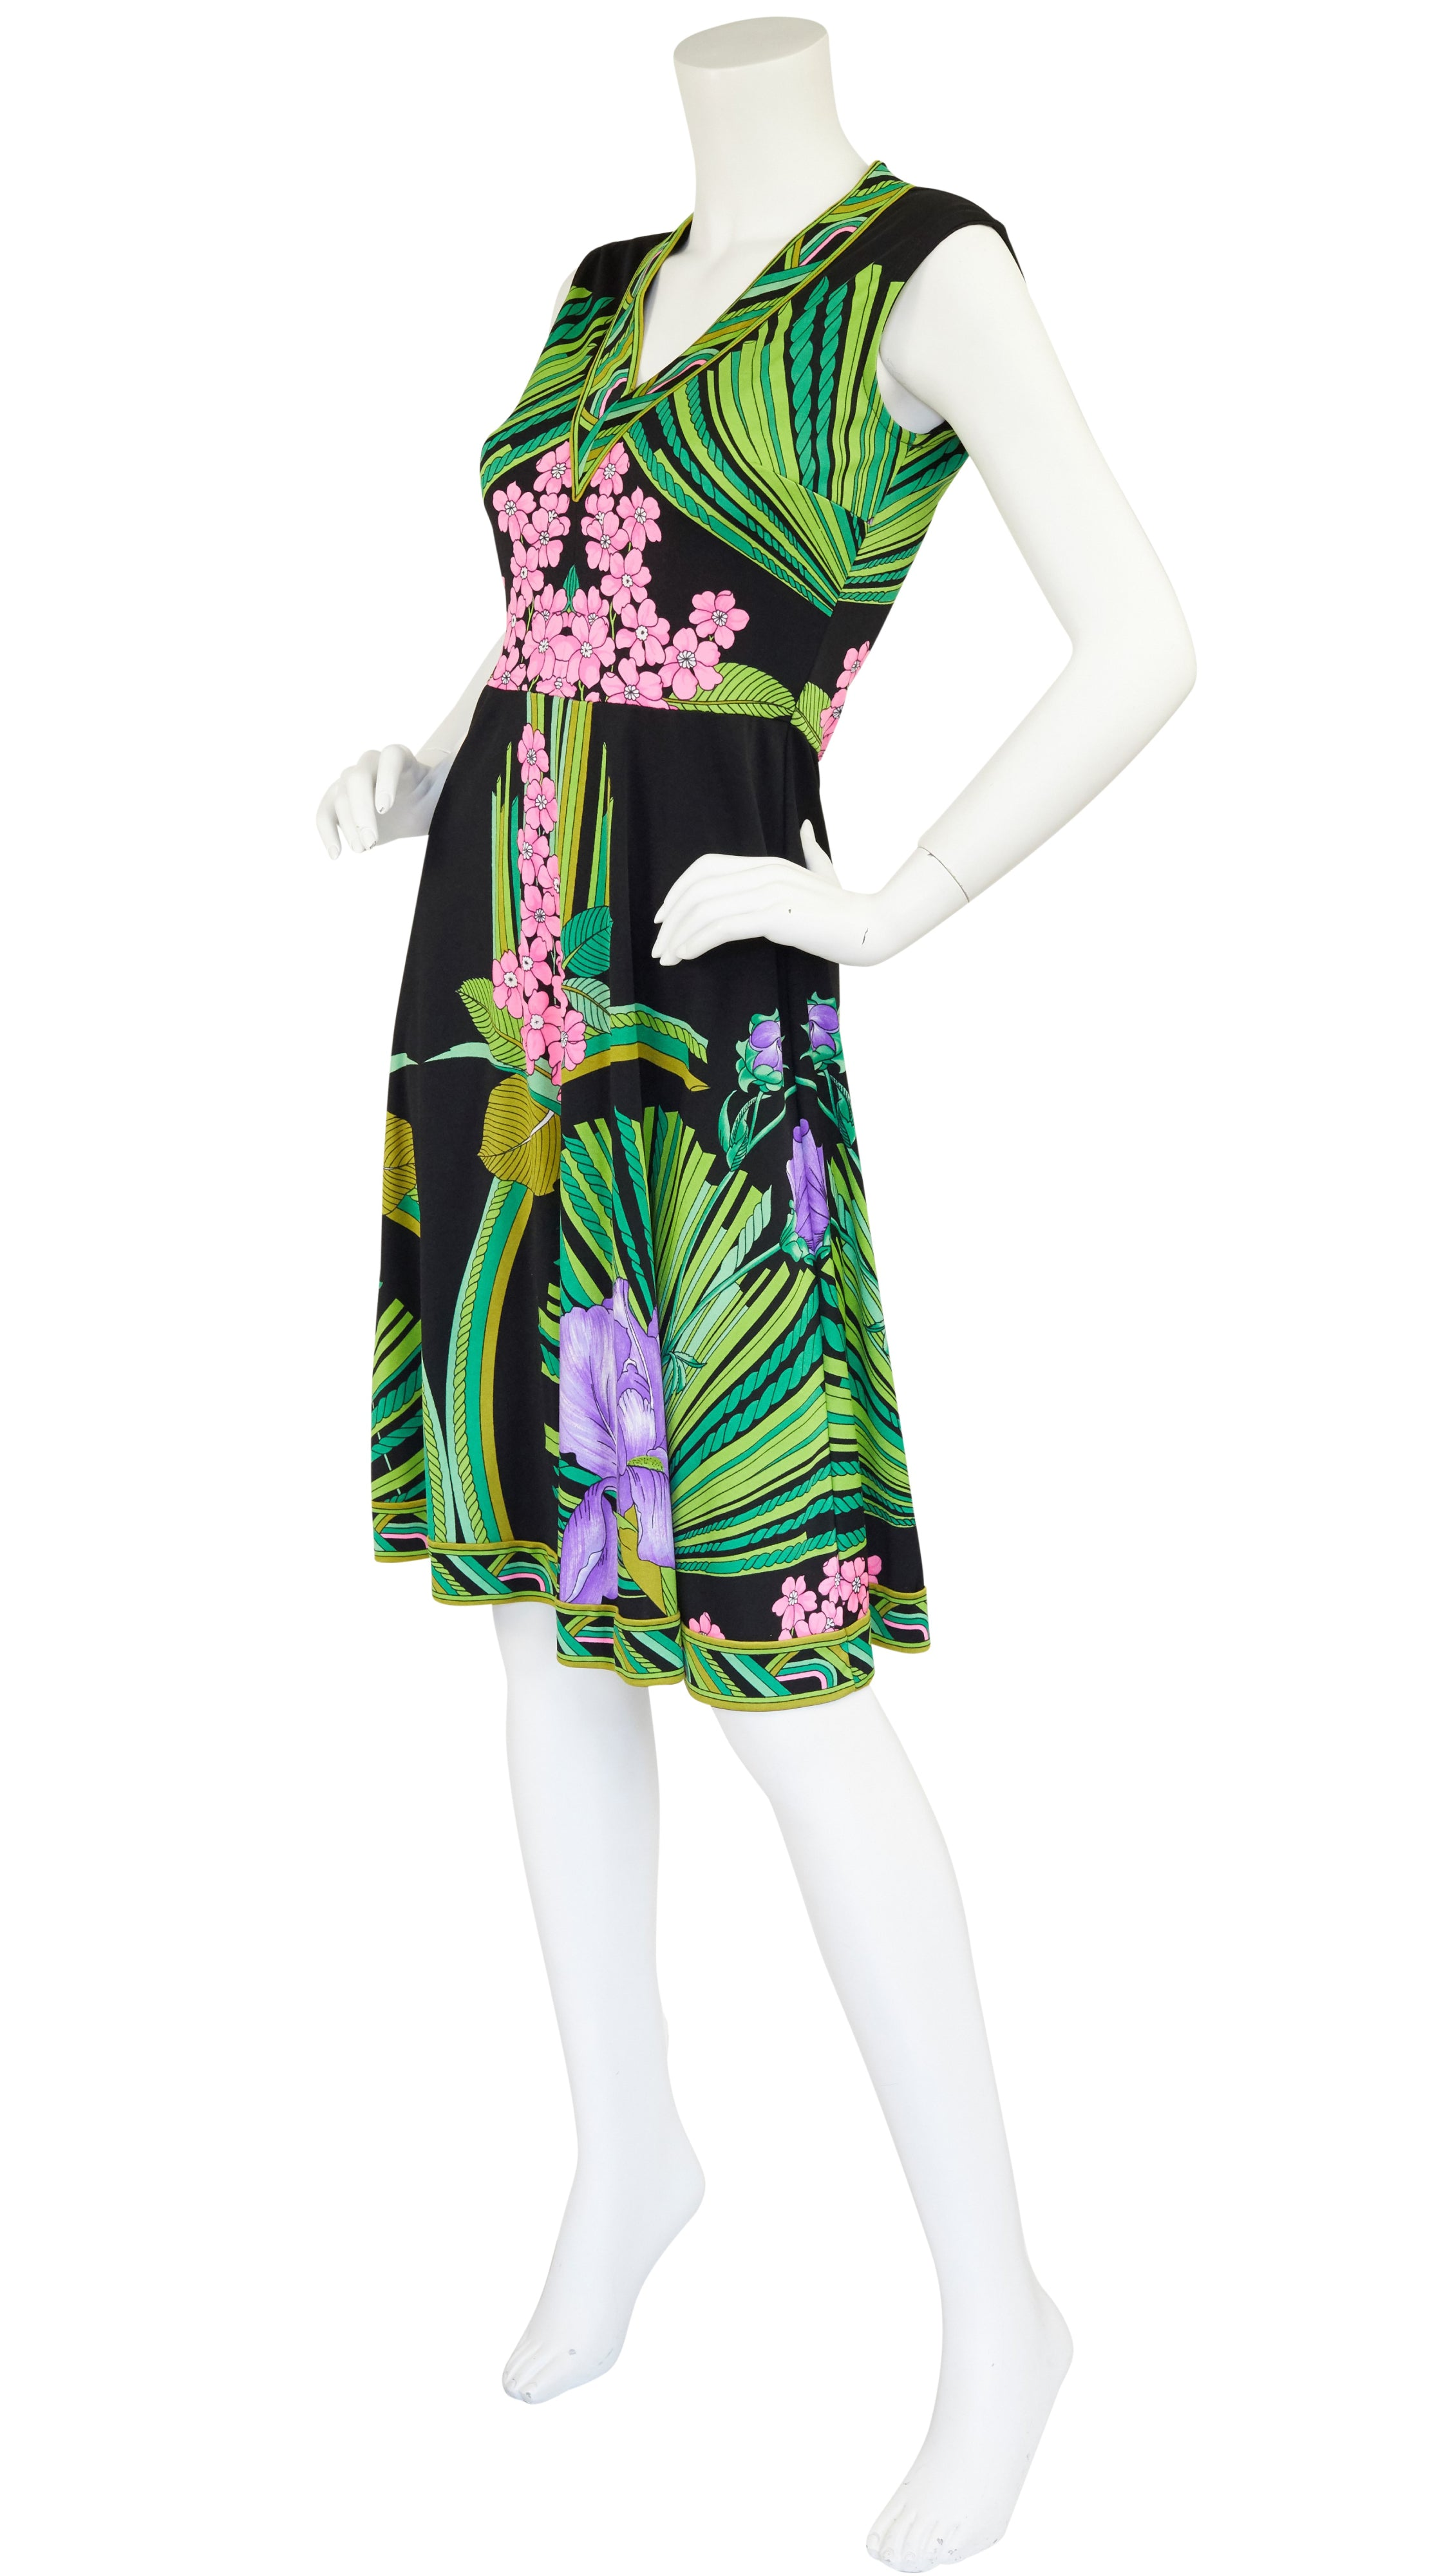 1970s Black Floral Leonard-esque Jersey Dress